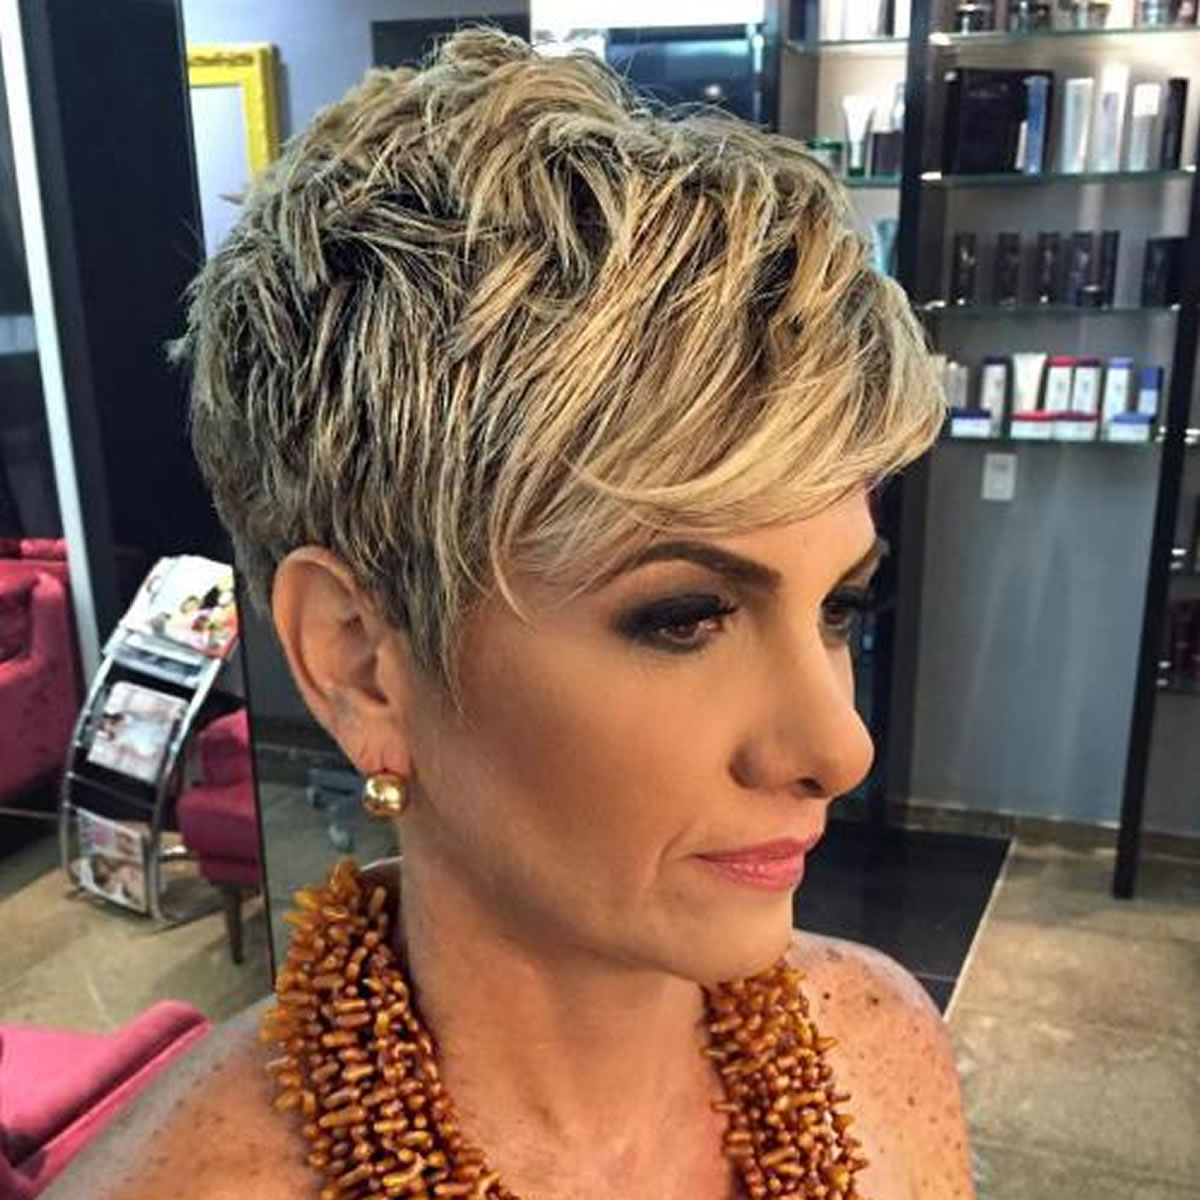 10 Prettiest Pixie Haircuts for Women over 60 Blonde-short-pixie-hairstyles-with-dark-roots